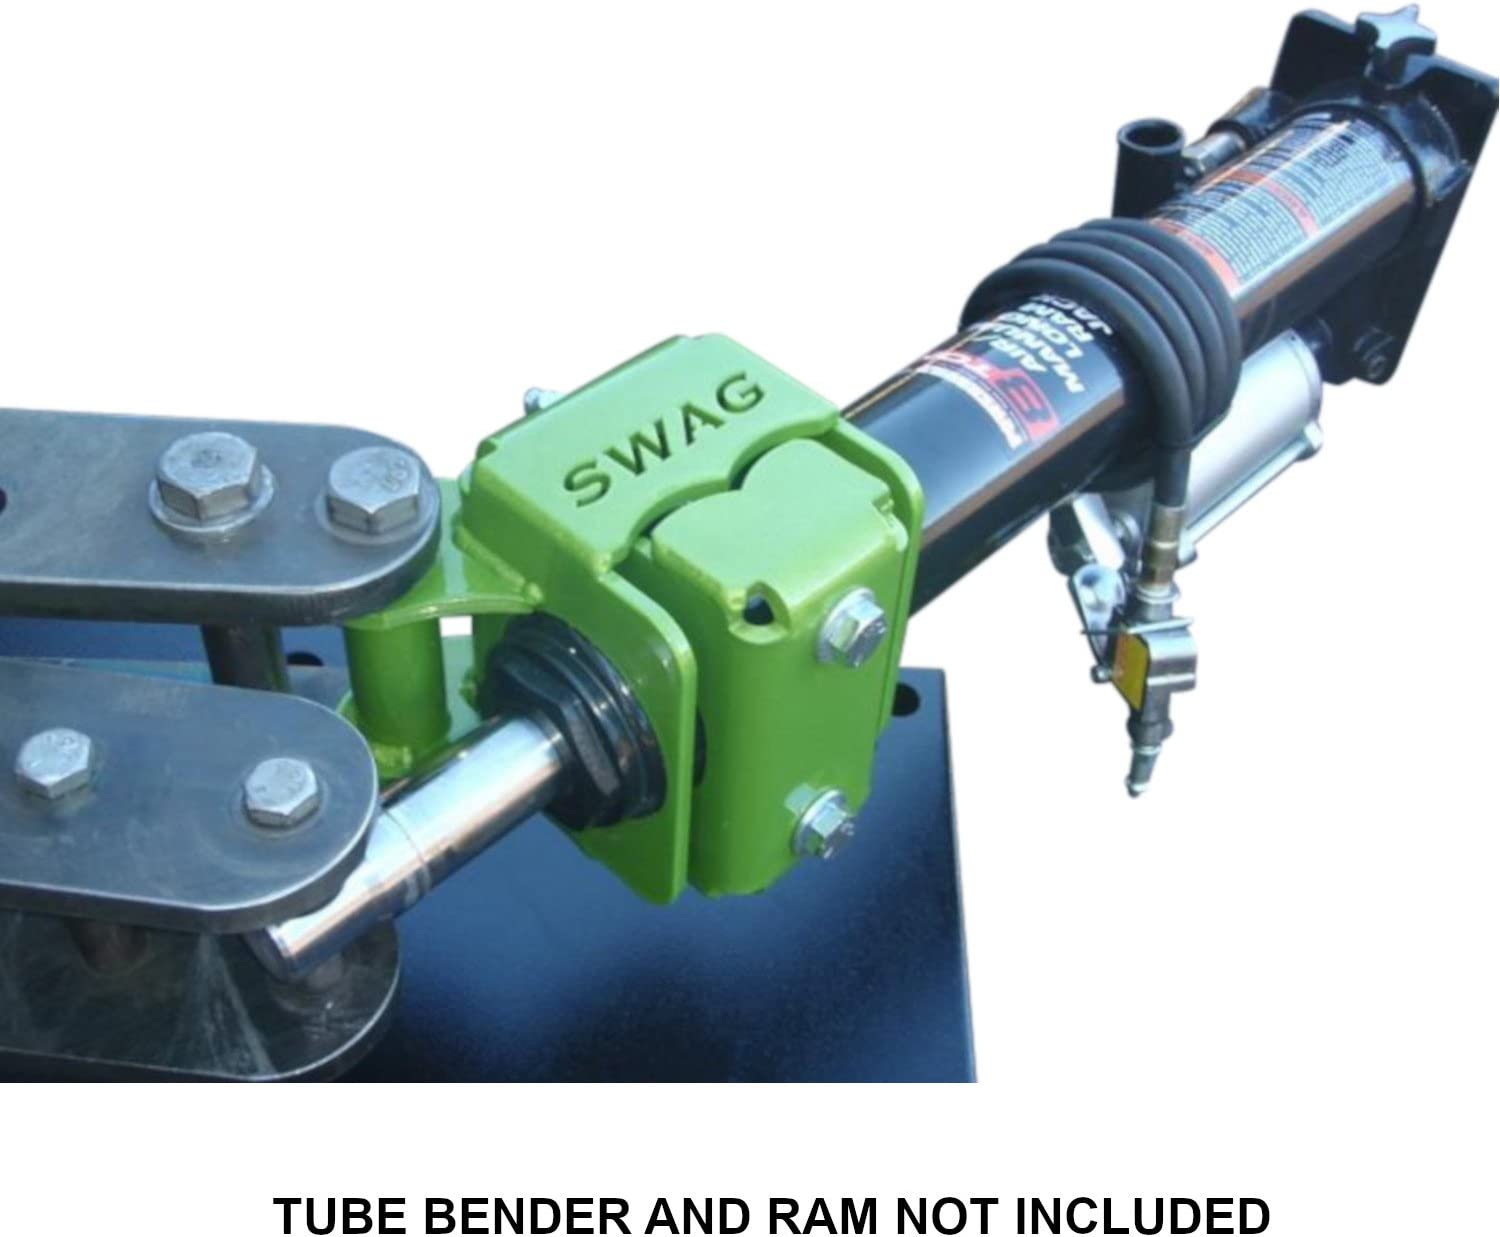 Swag Off Road Formed Tubing Bender Air Hydraulic Ram Mount Un Welded Pro Tools 105 105hd Jmr Woodward Fab And Eastwood Amazon Com